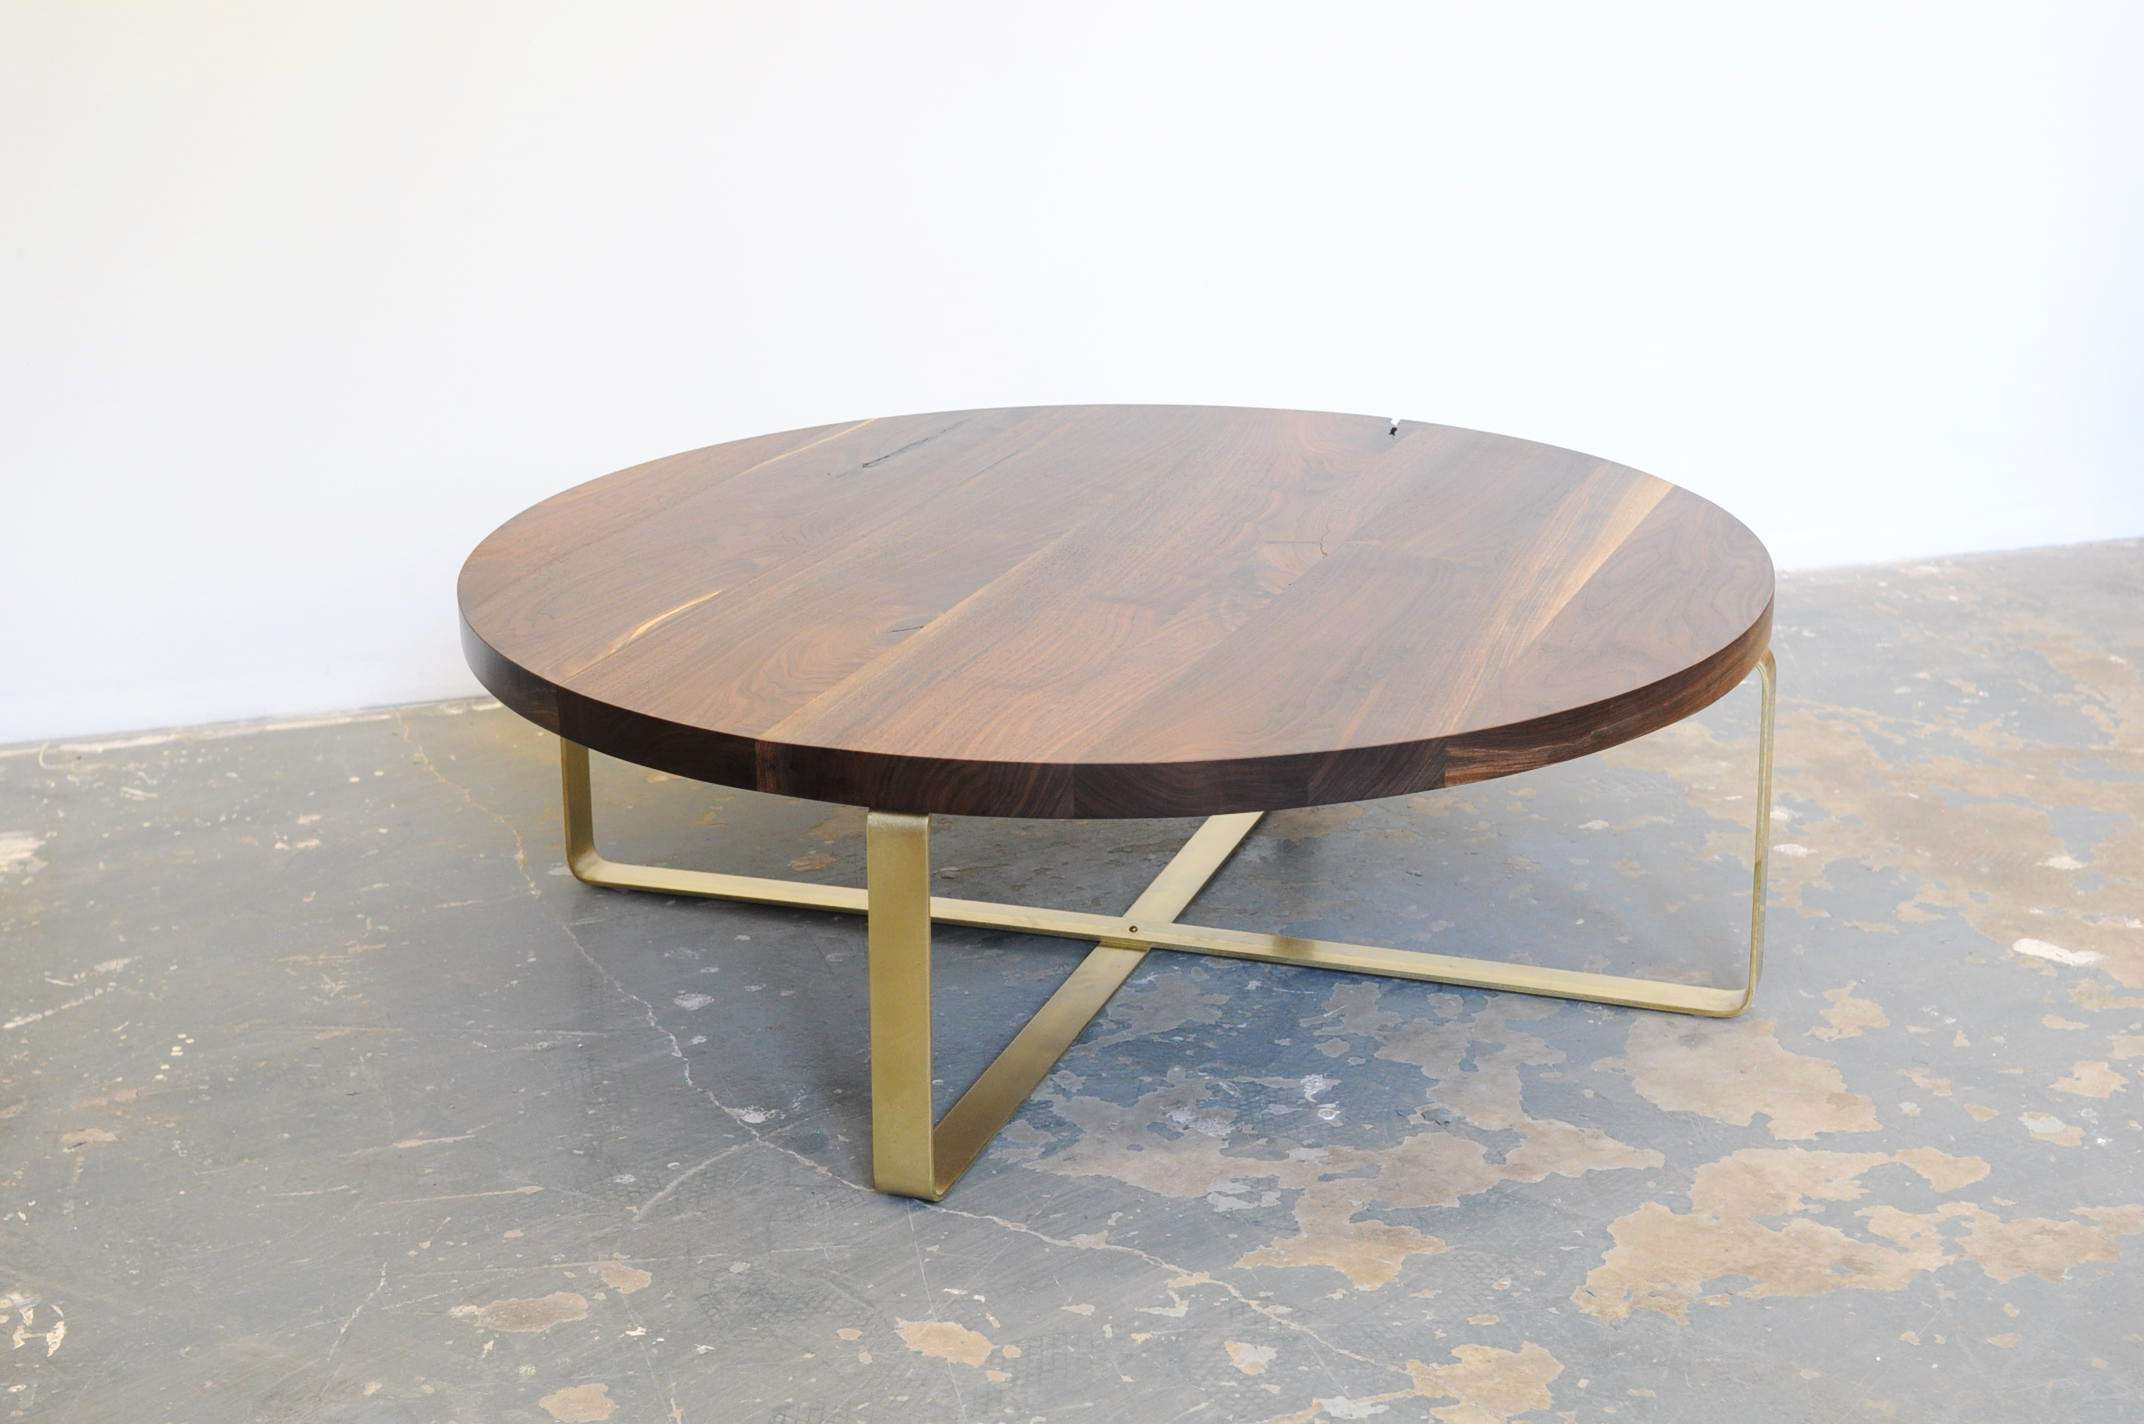 Explore Photos of Oval Walnut Coffee Tables (Showing 18 of